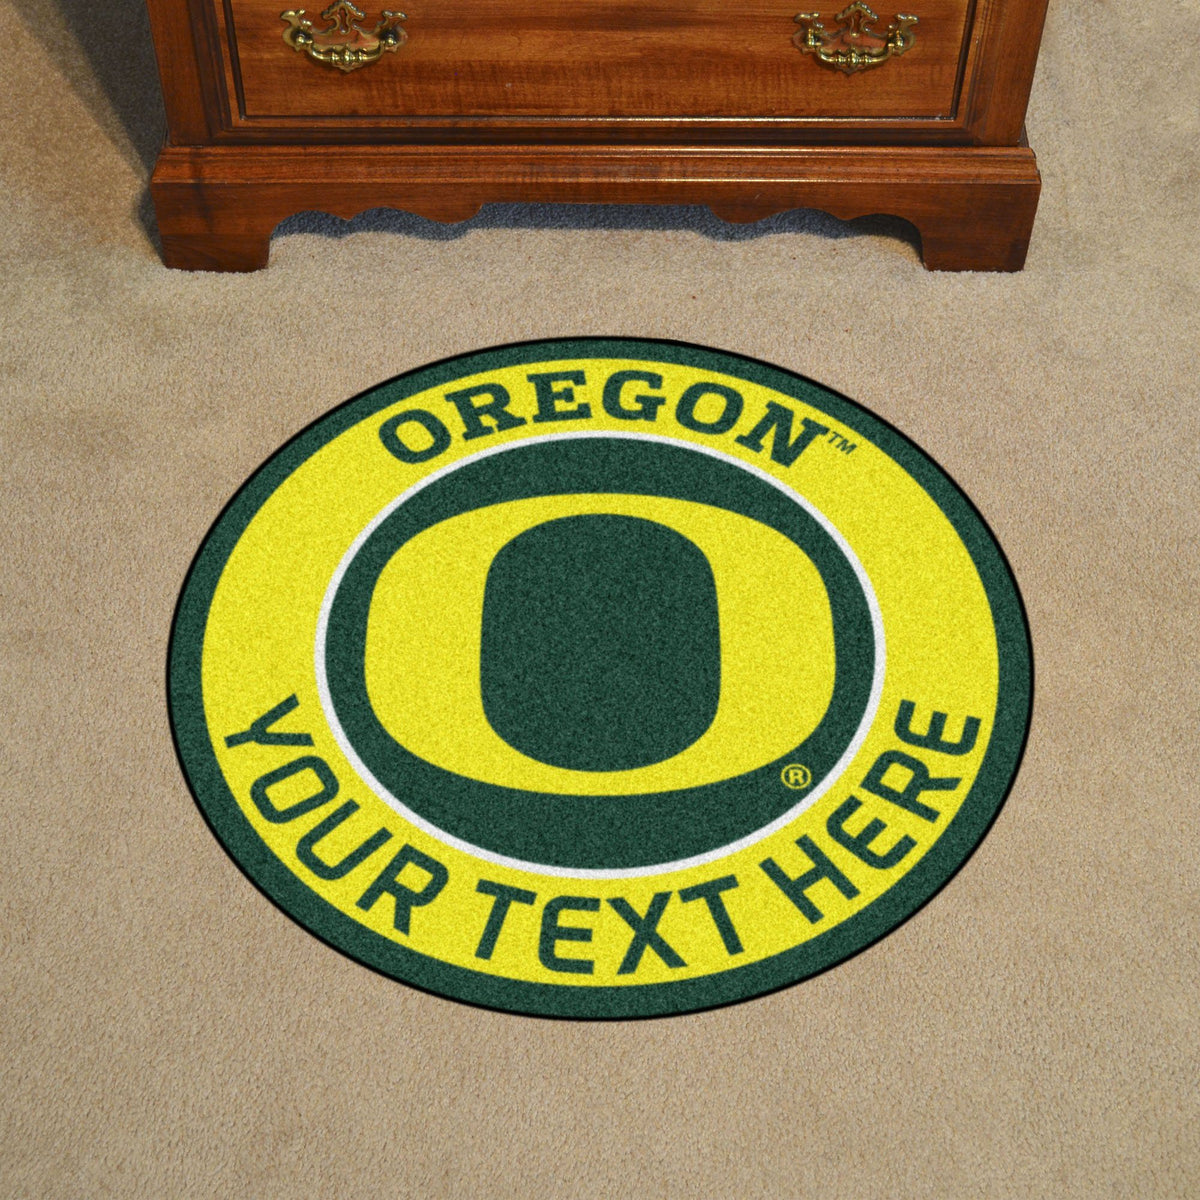 Collegiate Personalized Roundel Mat Personalized Roundel Mat Fan Mats University of Oregon